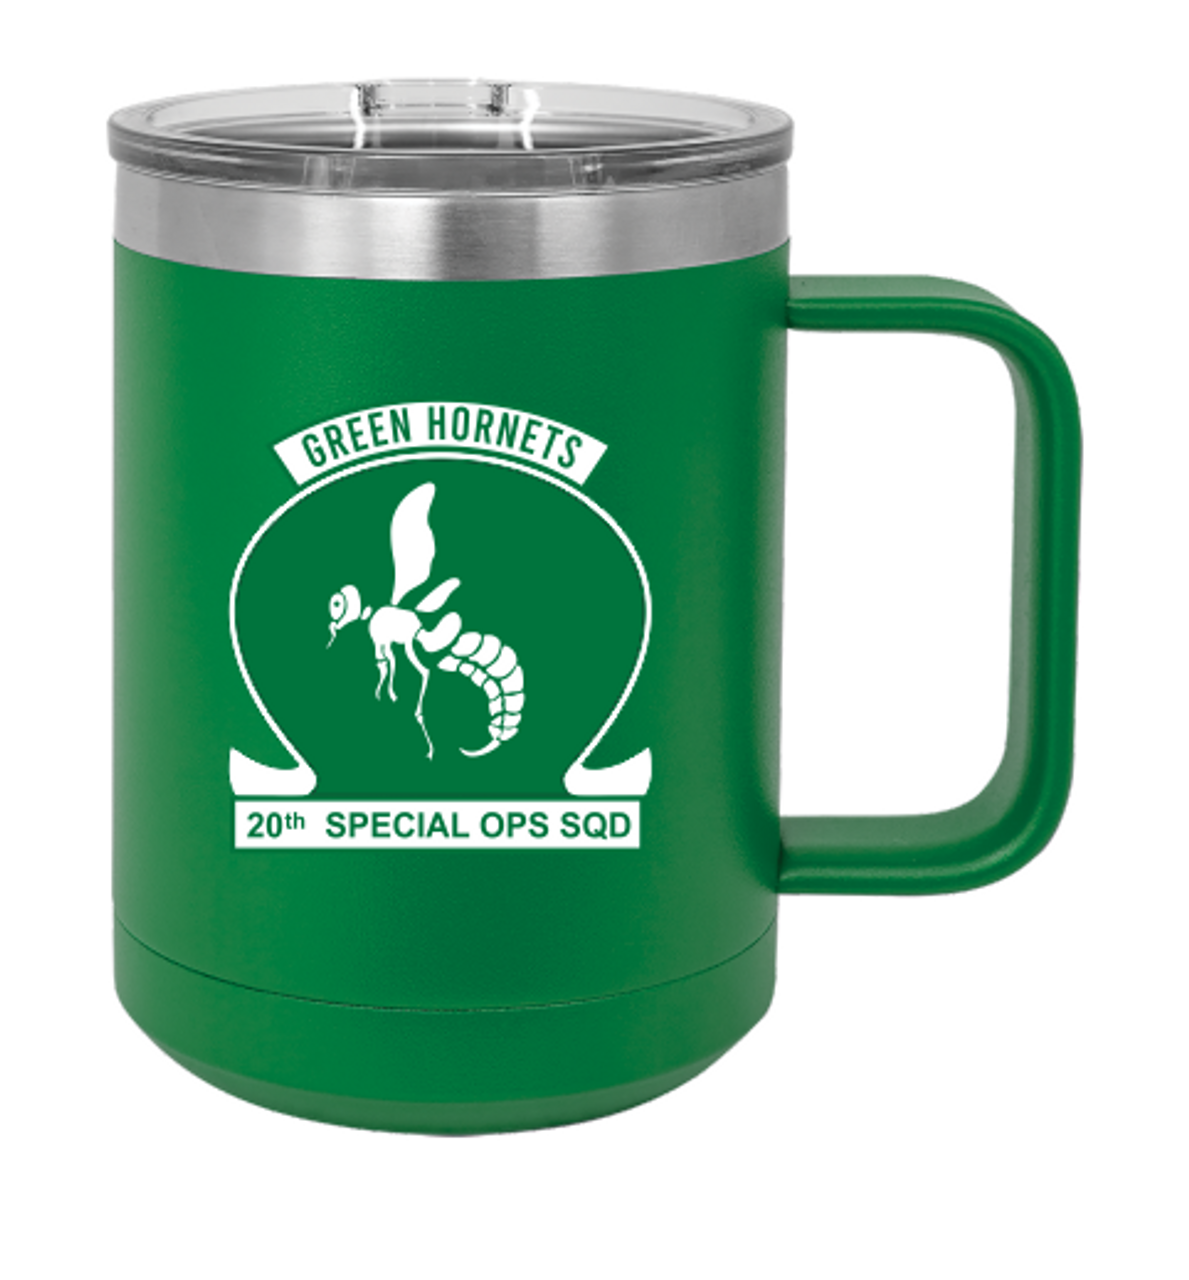 Green Hornets Stainless Steel Coffee Cup